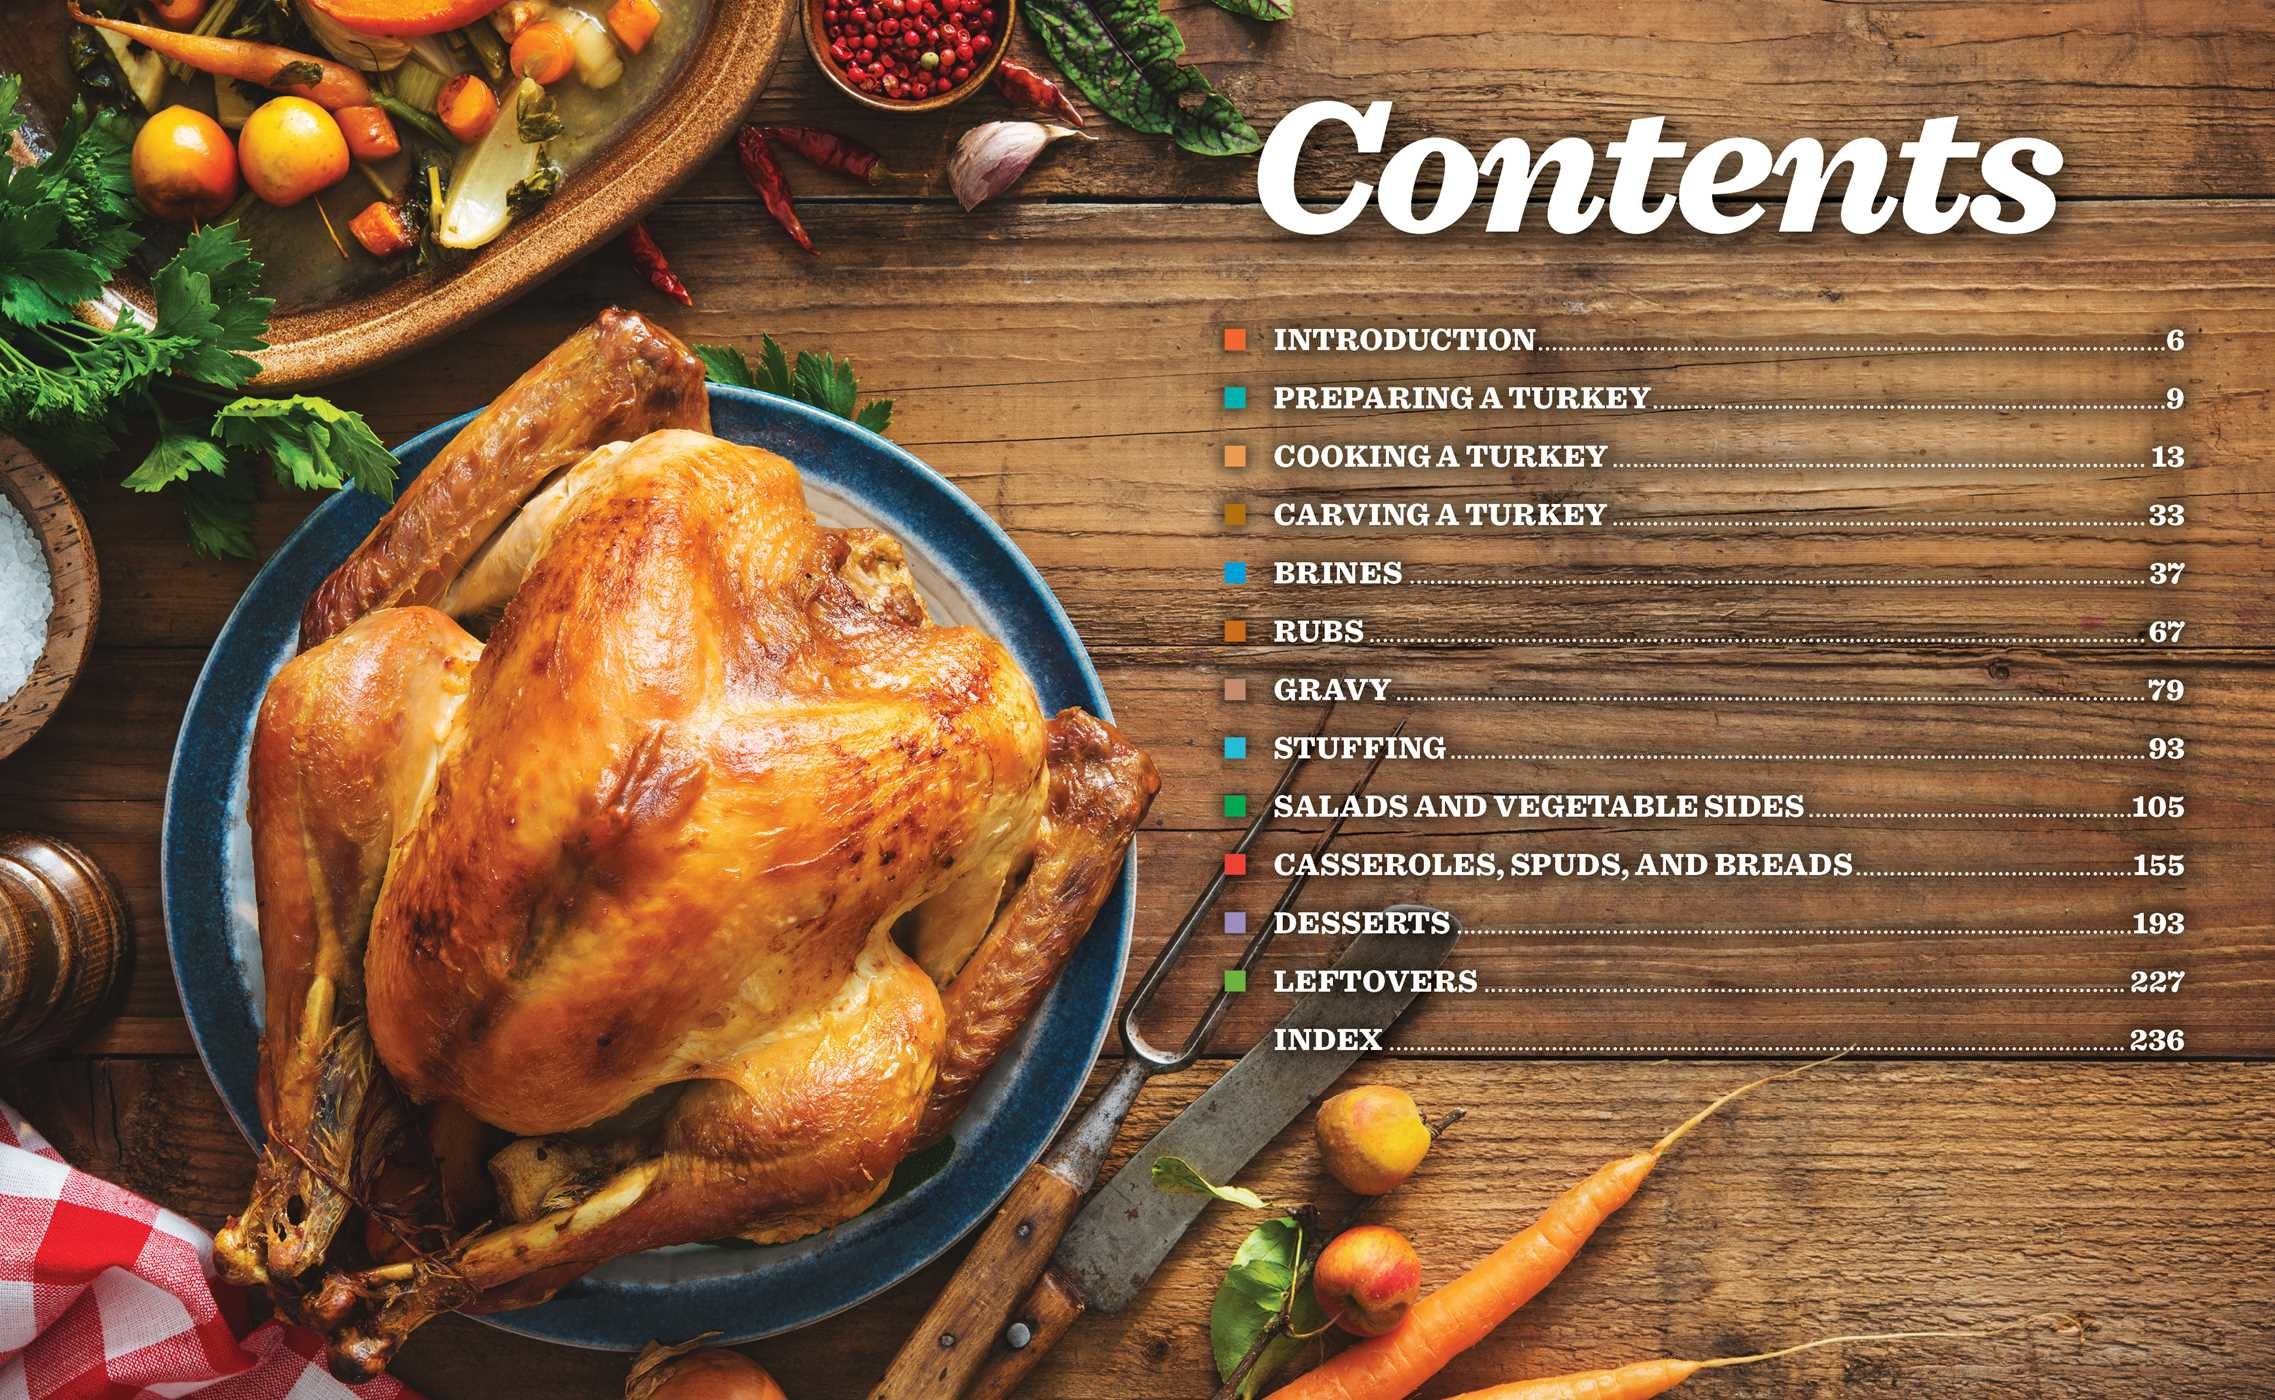 Perfect turkey cookbook 9781604338065.in02